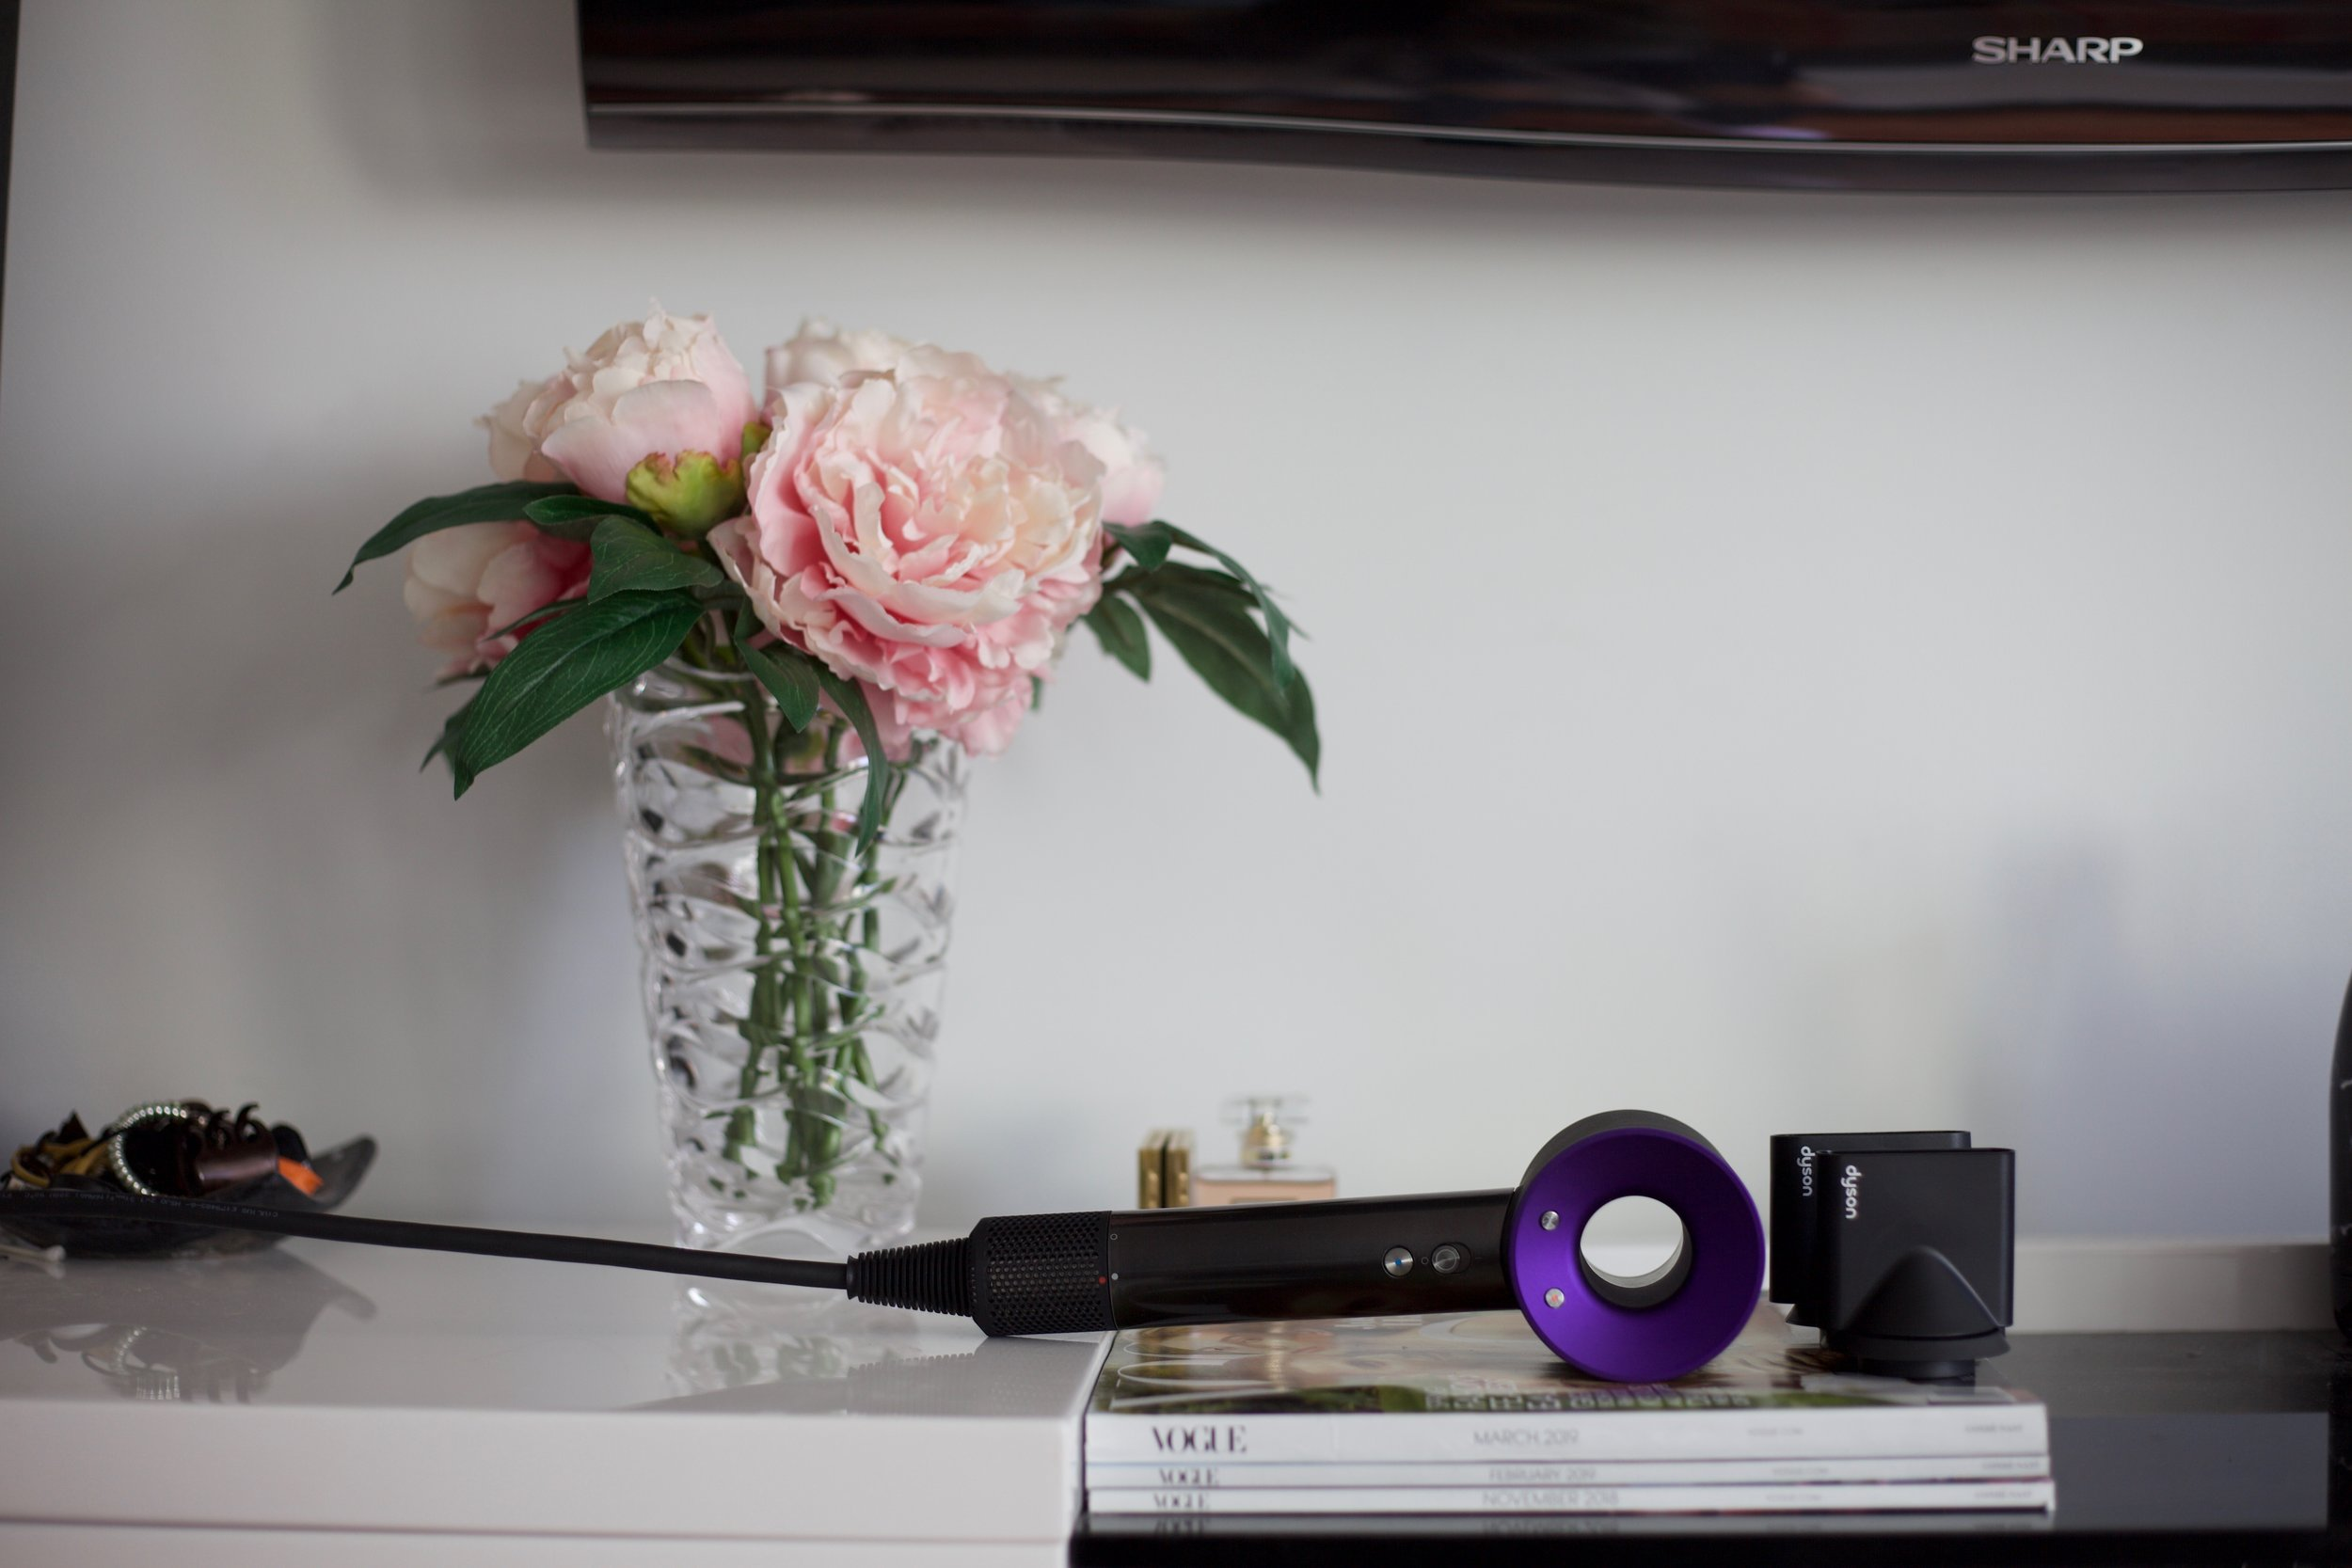 Dyson blow dryer review